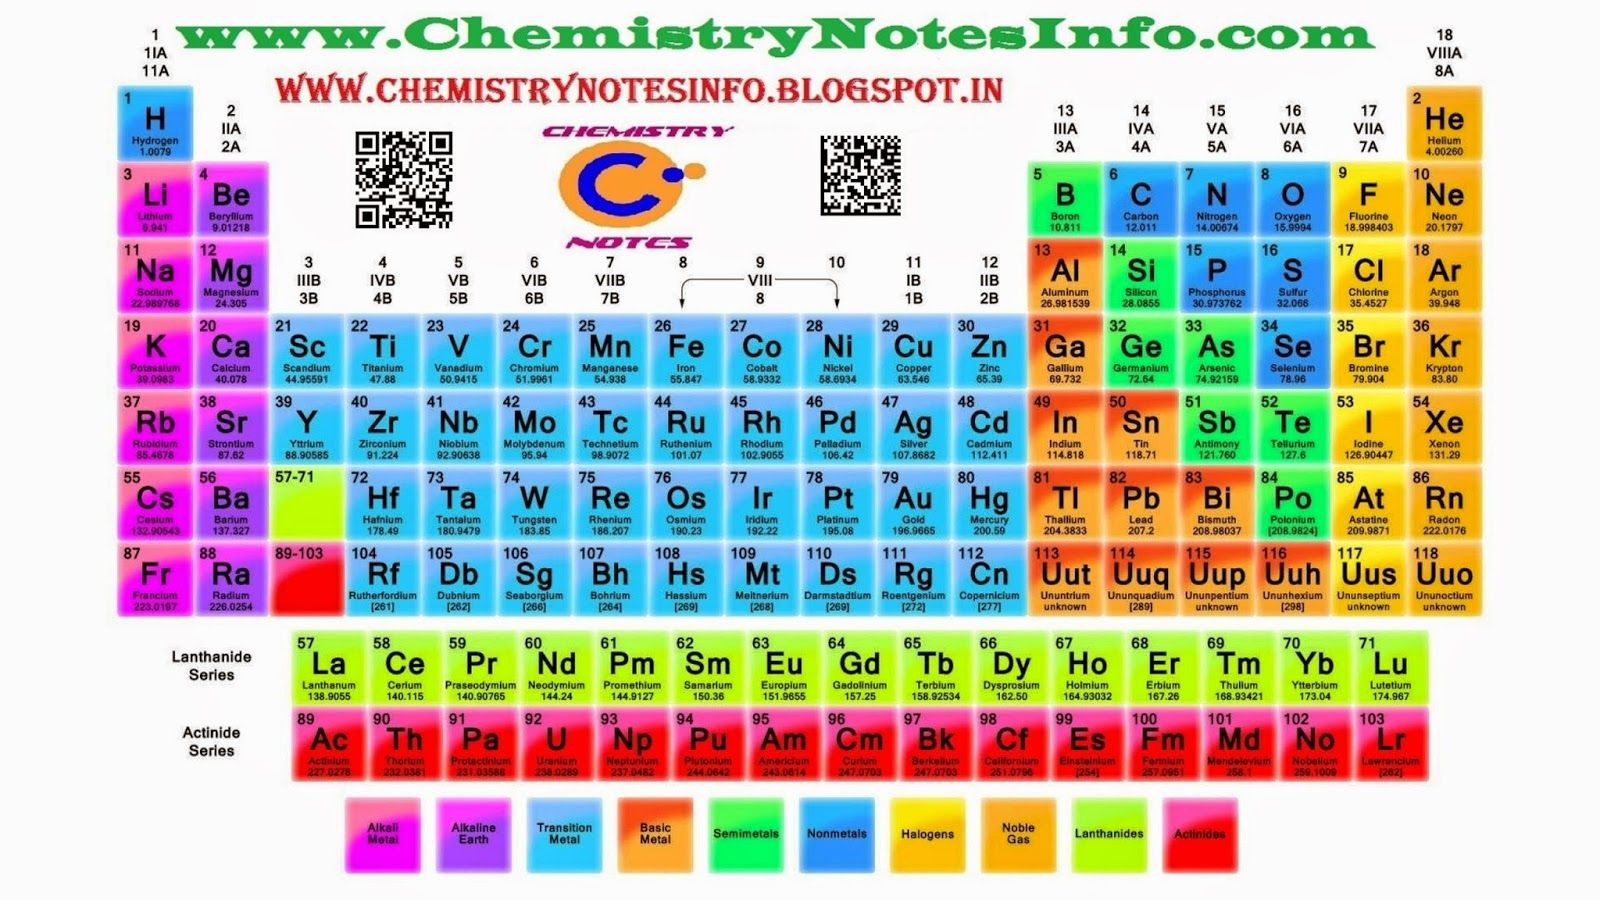 periodic table of elements by chemistry notes info at wwwchemistrynotesinfo - Periodic Table Of Elements Years